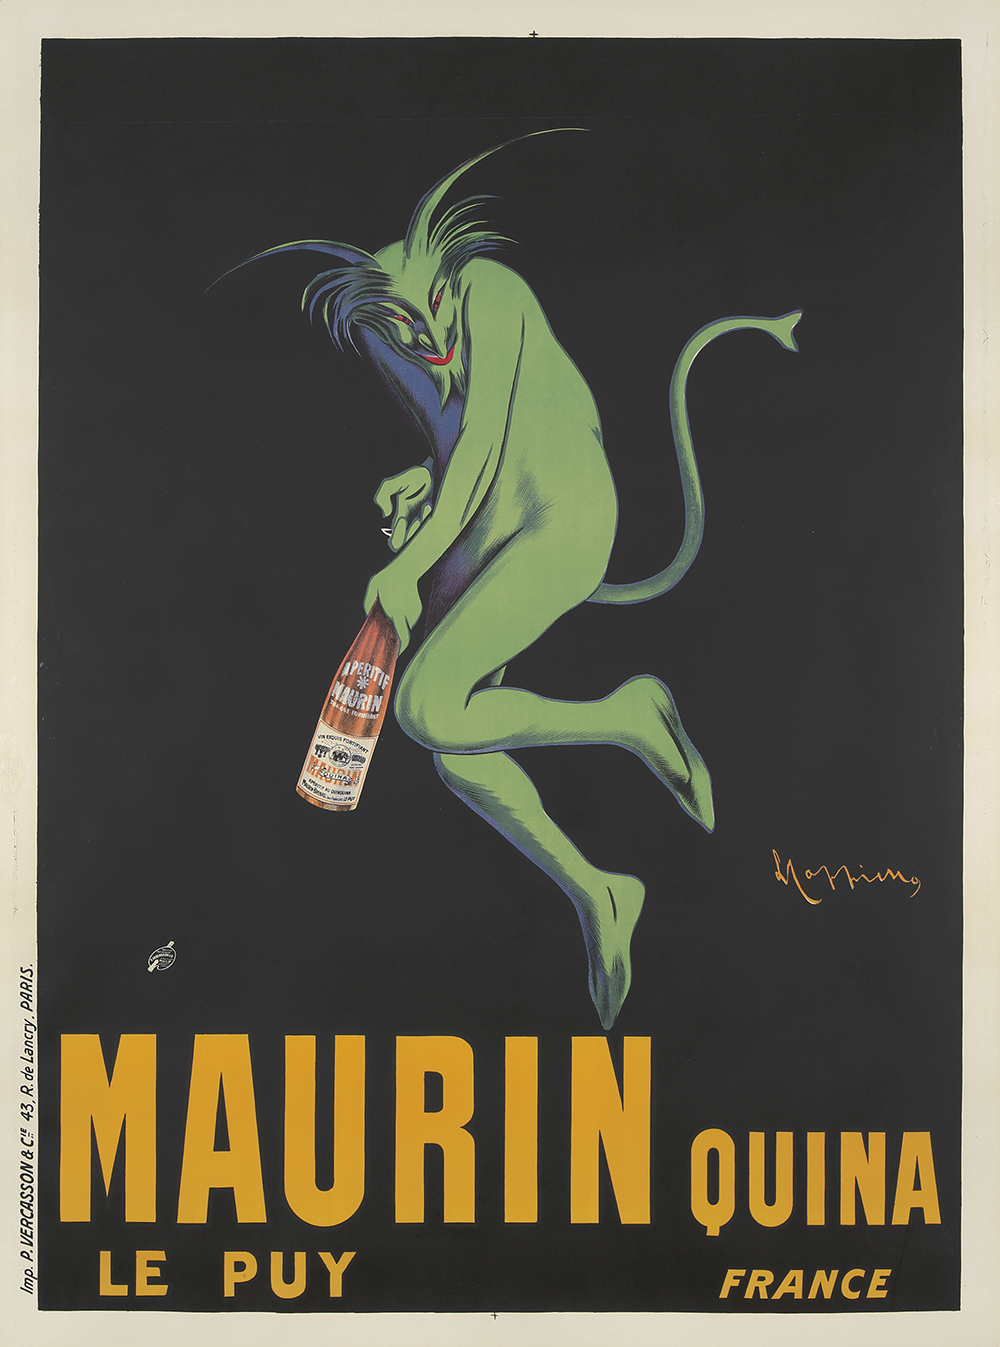 219. Maurin Quina. 1906.